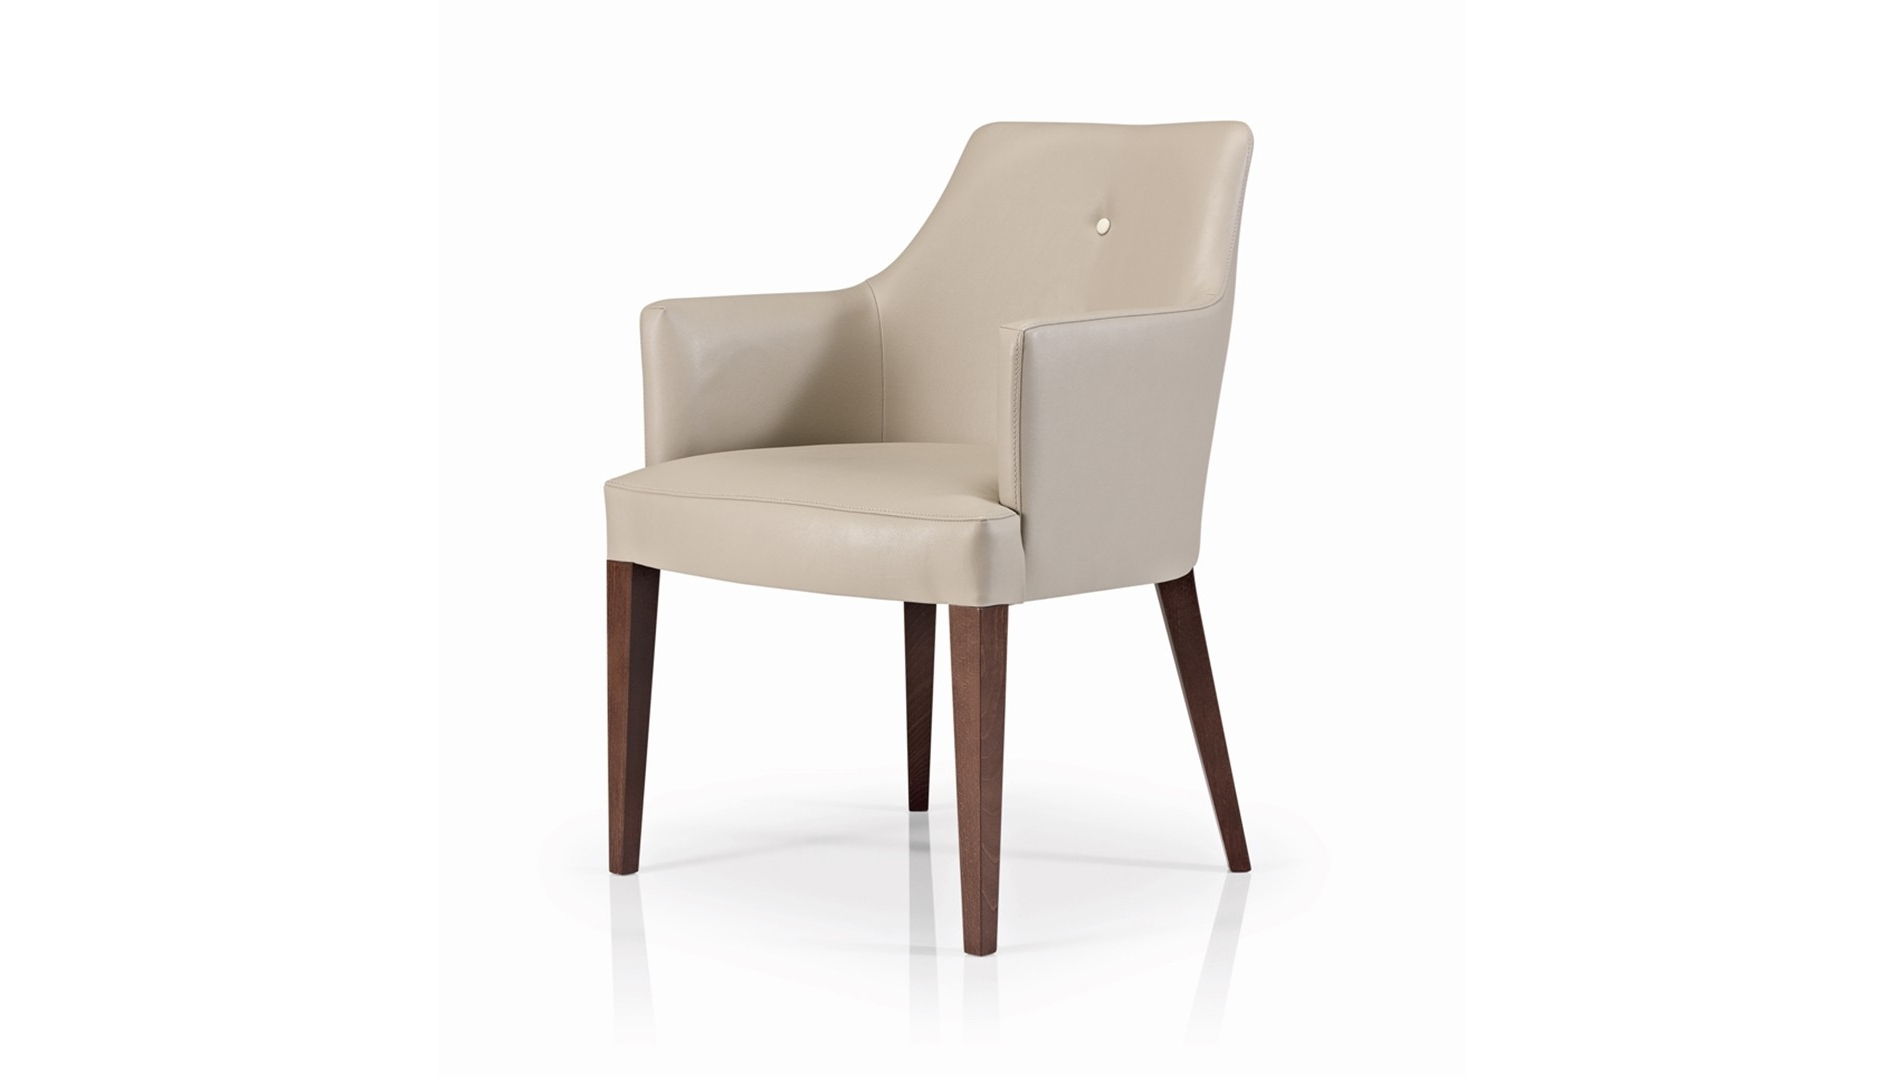 Latest Dining Chairs With Regard To Luxdeco, Venice Carver Dining Chair – Buy Online At Luxdeco (View 21 of 25)